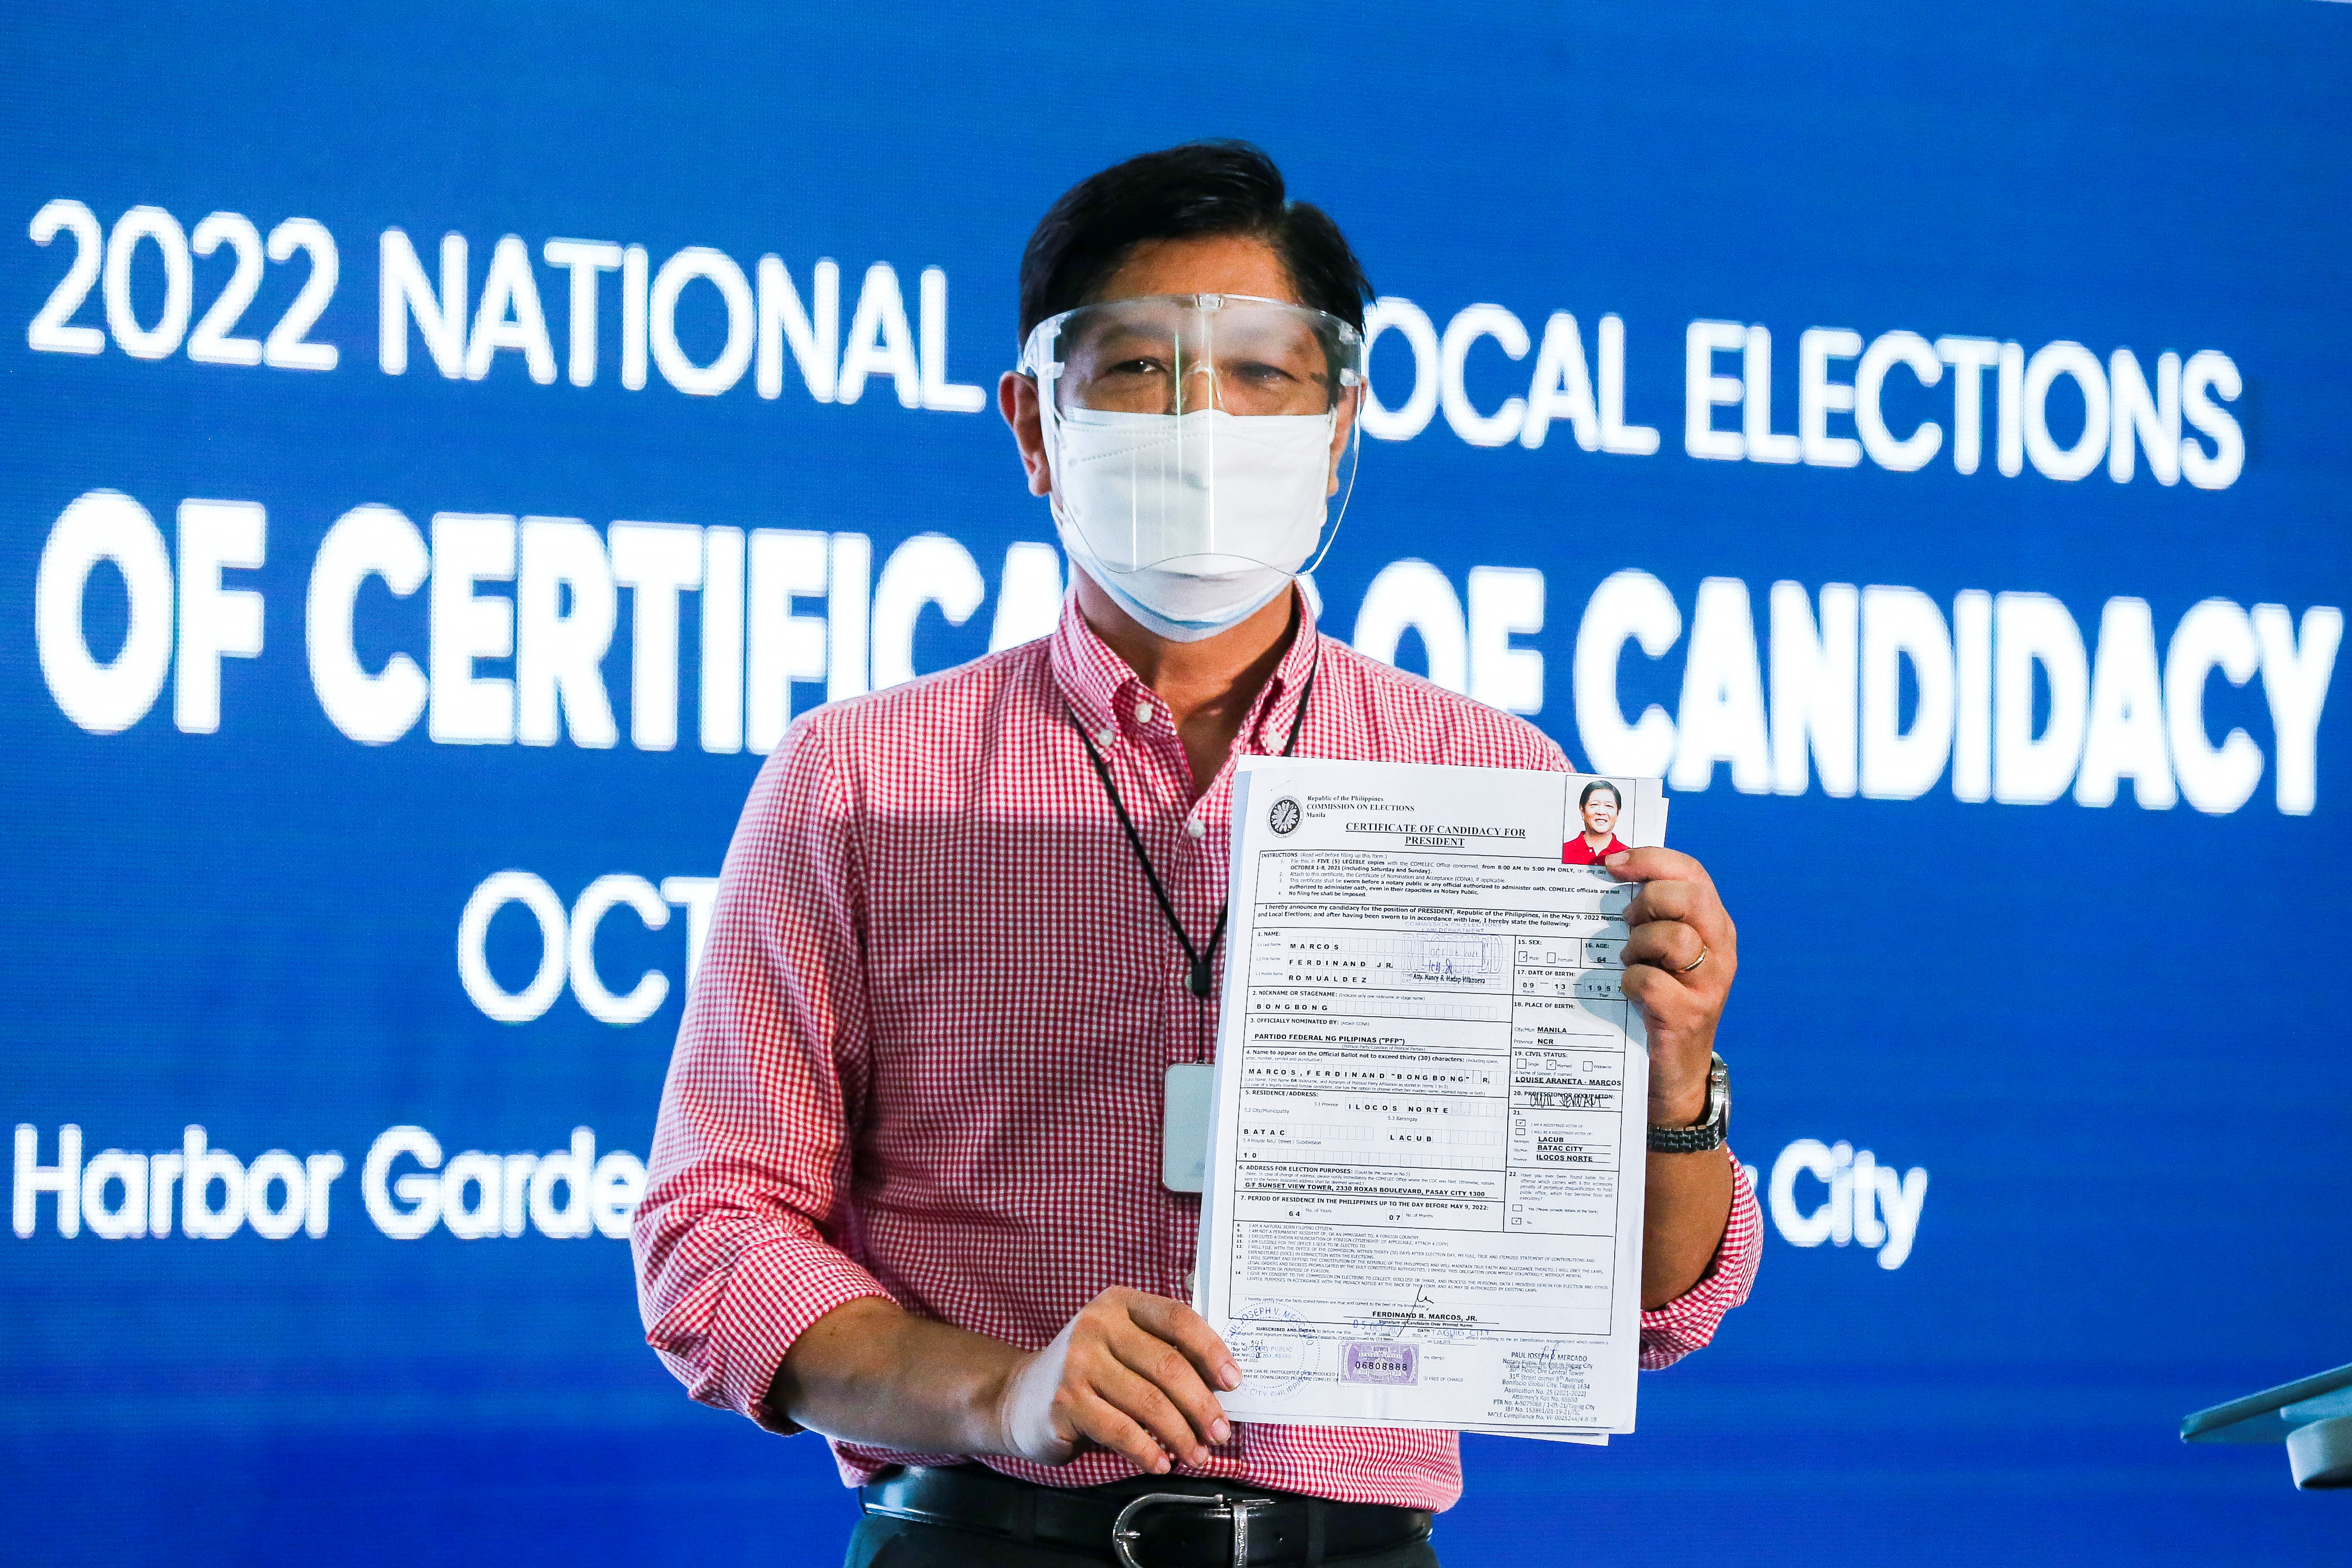 Ferdinand Marcos Jr, the son of late Philippines dictator Ferdinand Marcos, poses for pictures after filing his certificate of candidacy for president in the 2022 national election, in Pasay City, Metro Manila, Philippines, October 6, 2021. Rouelle Umali/Pool via Reuters